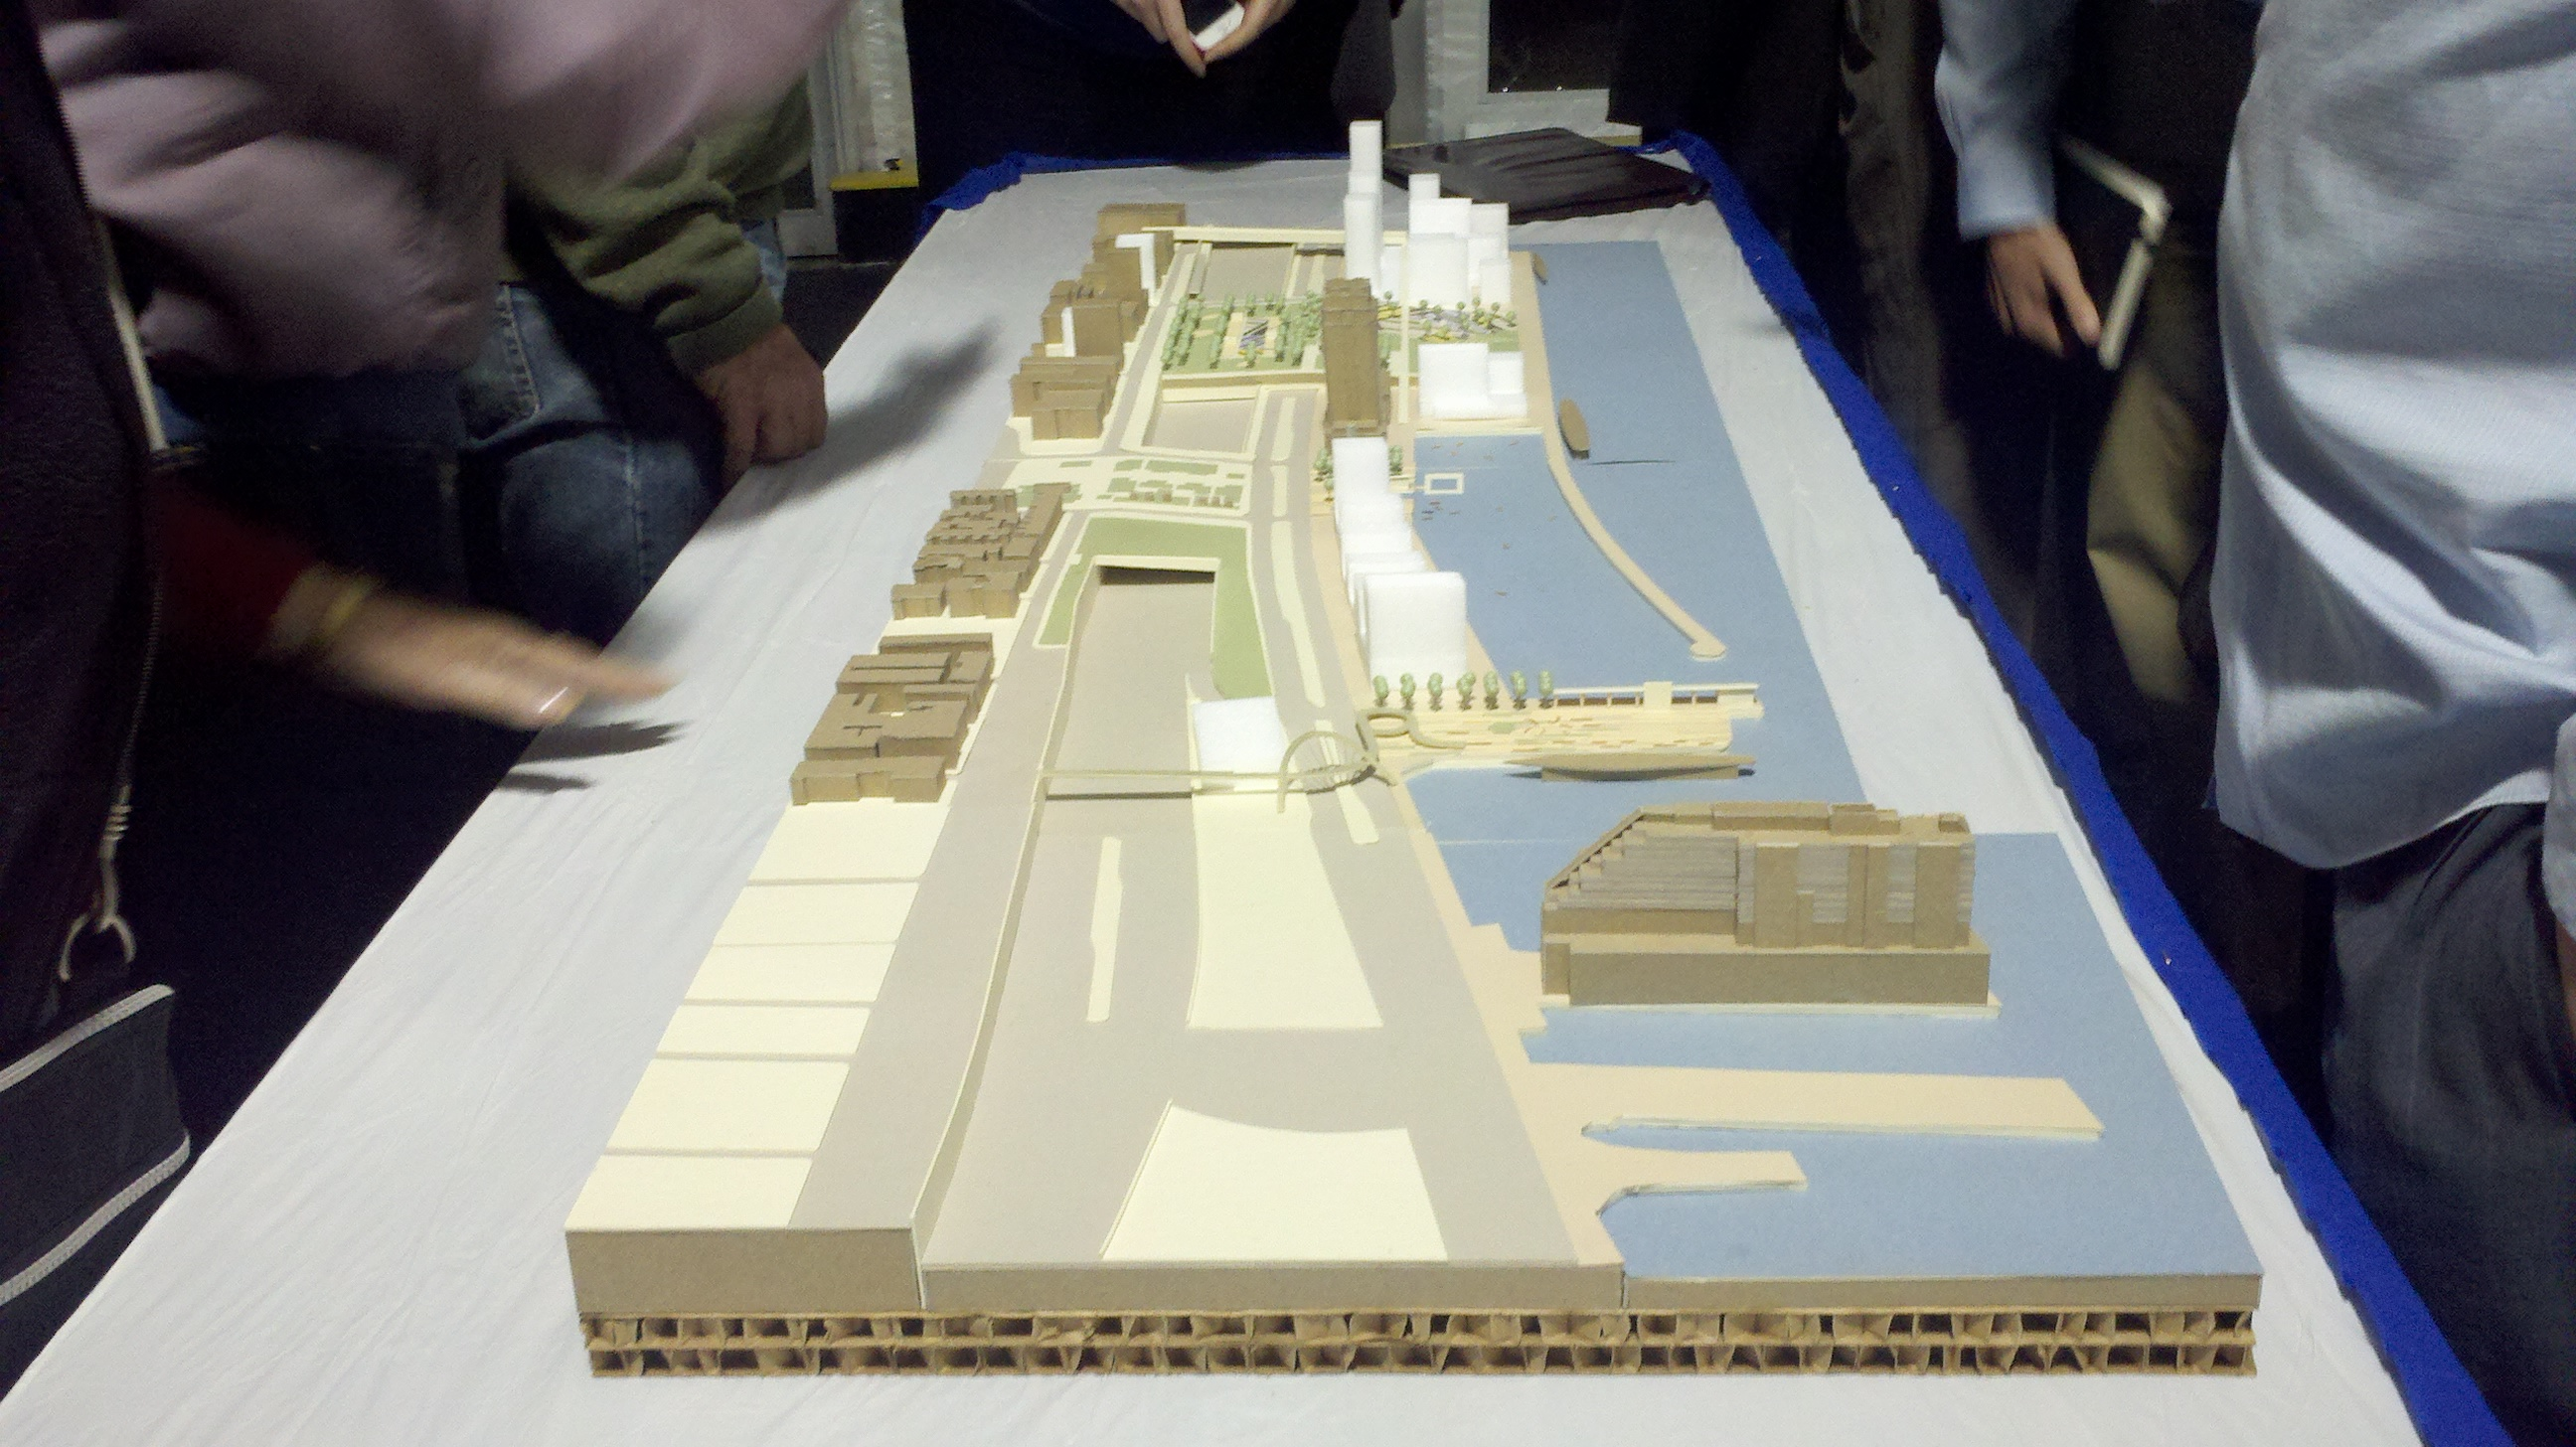 Hargreaves' three-dimensional model for Penn's Landing